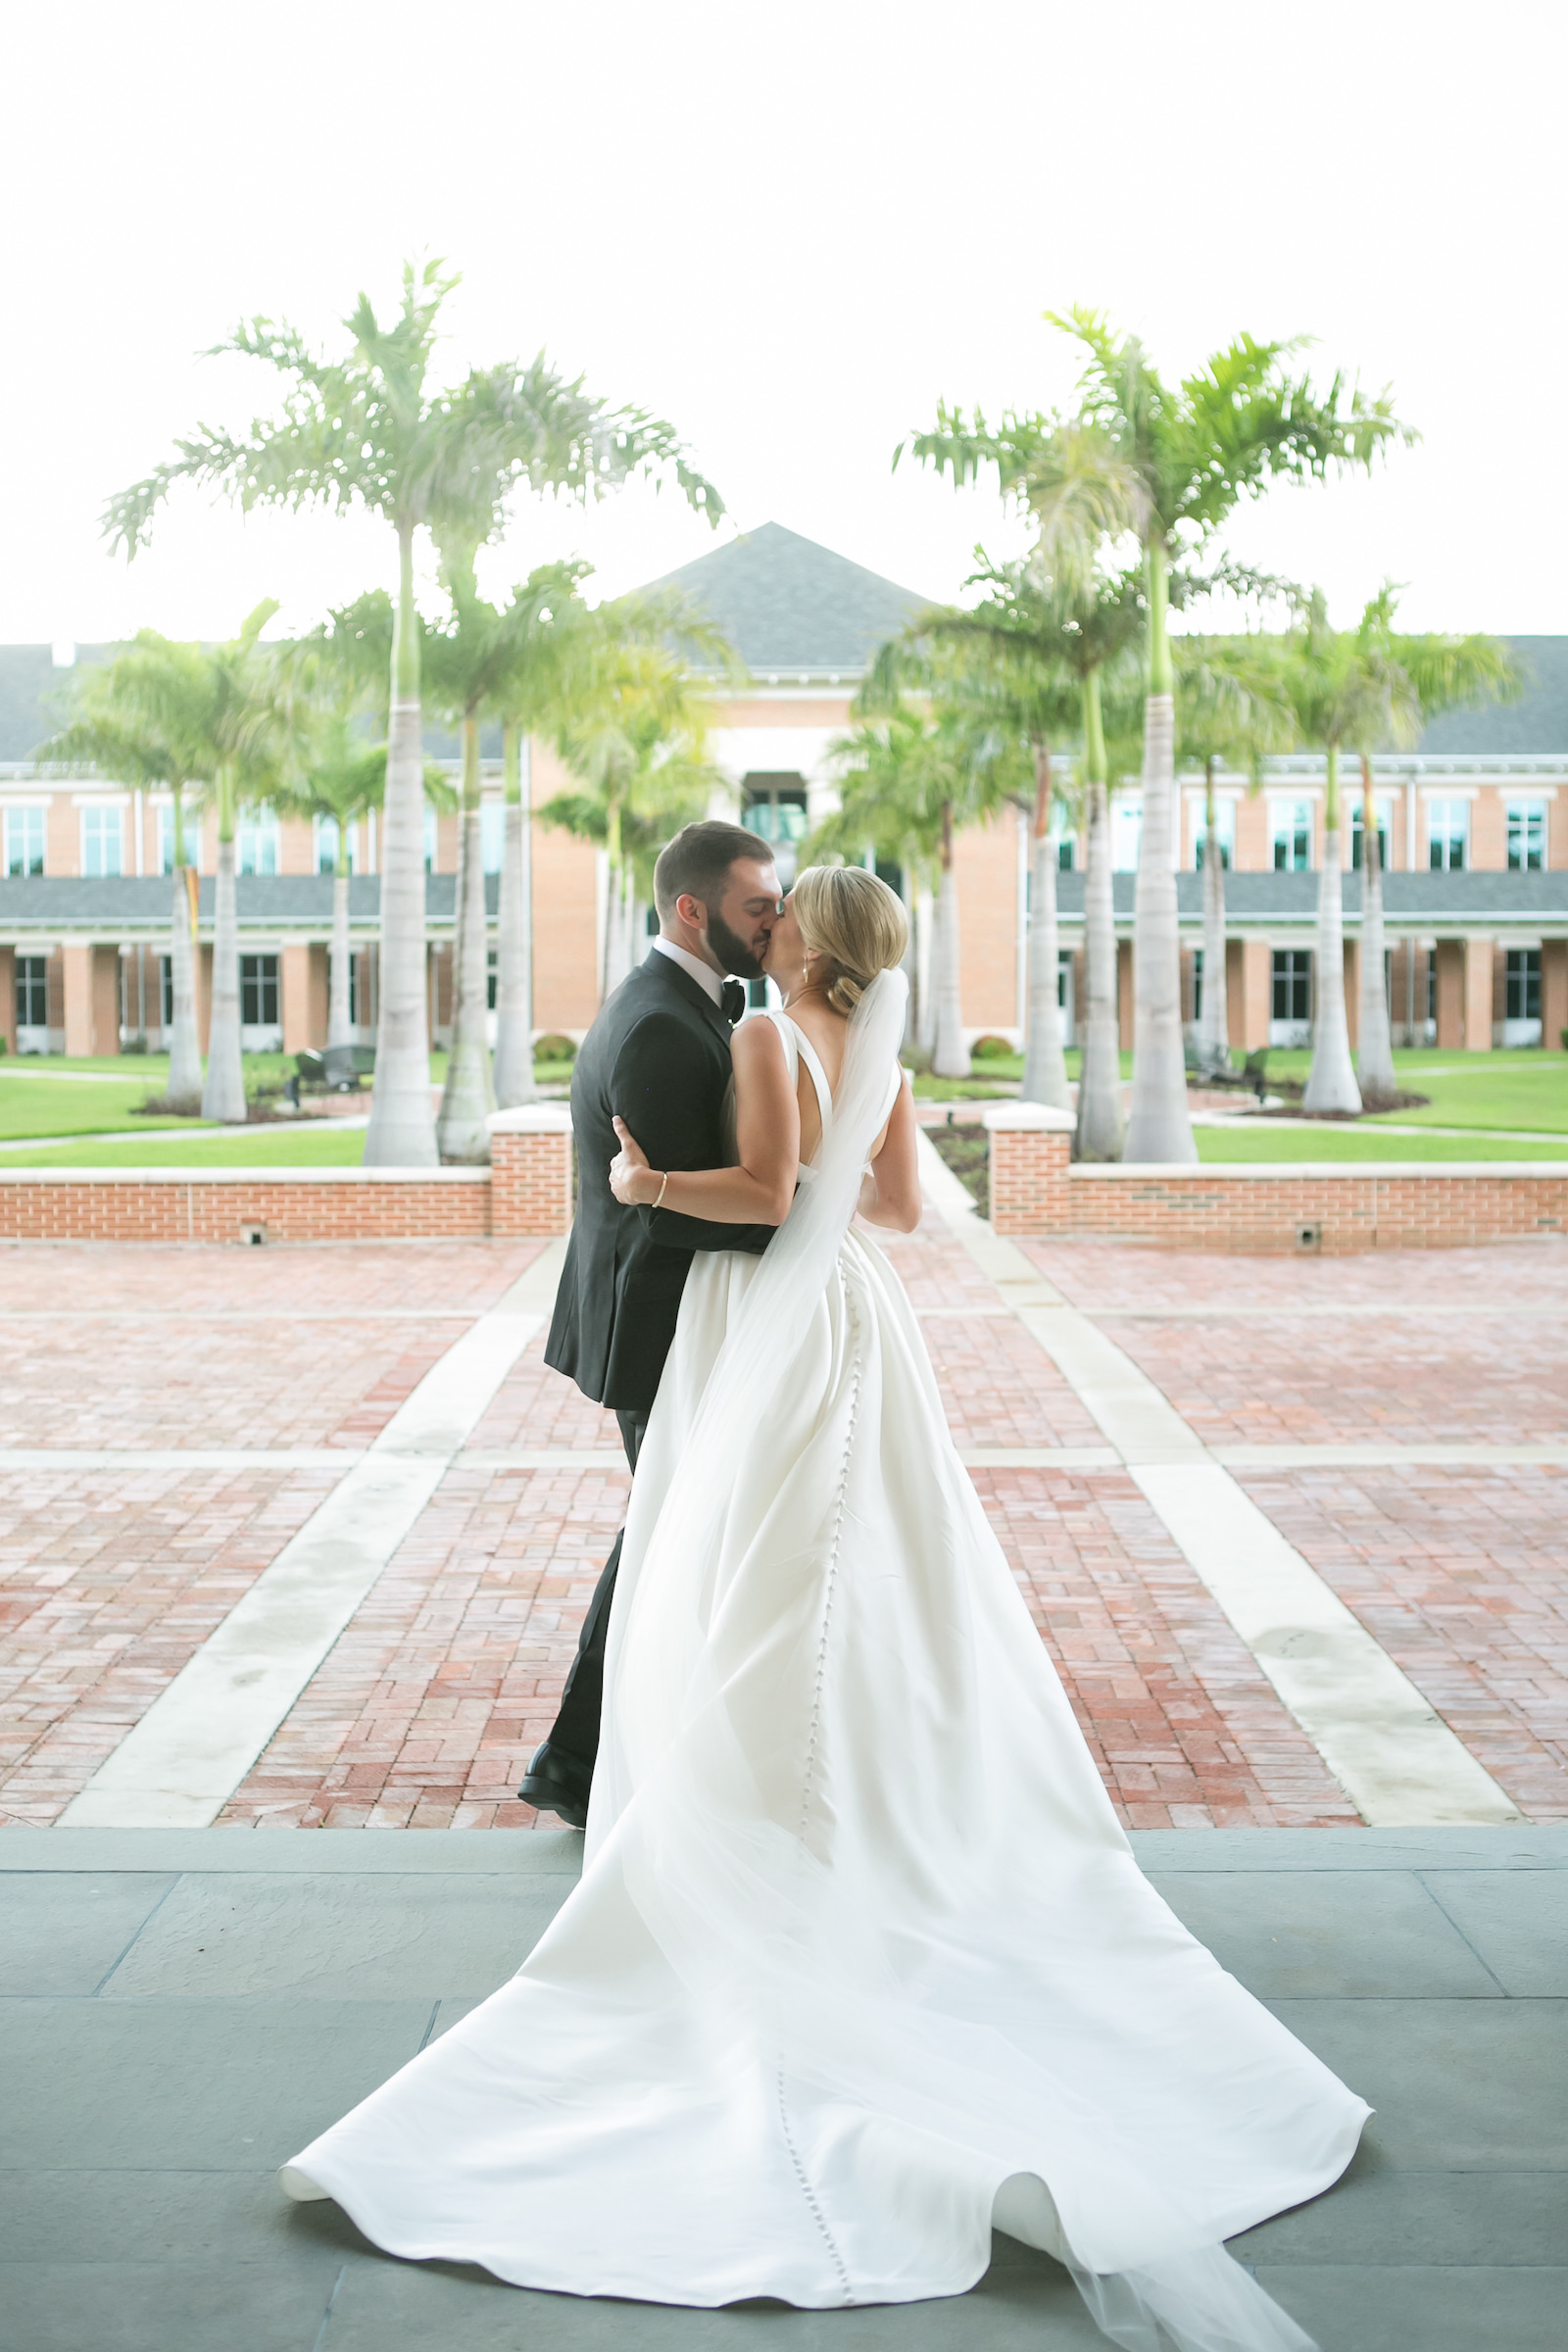 Bride and Groom Outdoor Portrait | Bateau Neck Mikado Satin Martina Liana Simple Elegant Wedding Dress with Buttons Down Back | Groom in Classic Black Tux